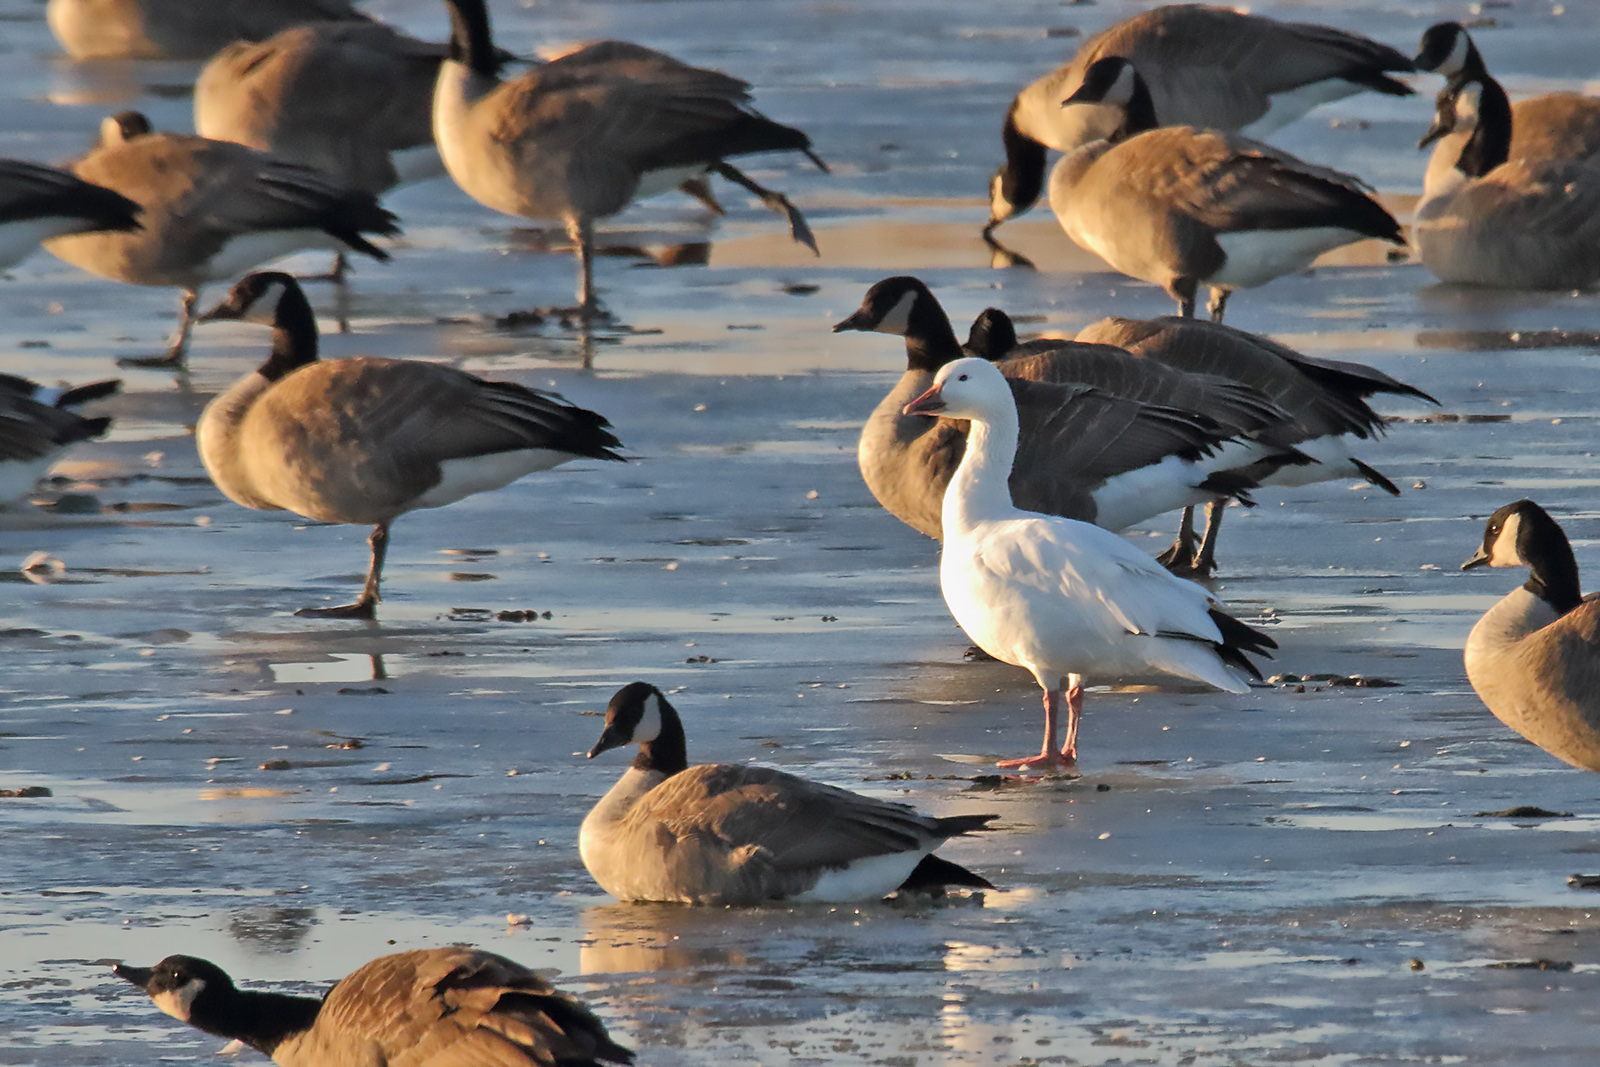 (1/2) A snow goose hangs out with Canada geese at Casey's Pond on snow goose at Fermilab on Dec. 22, 2019. nature, wildlife, animal, bird, goose, snow goose, Canada goose Photo: Gordon Garcia